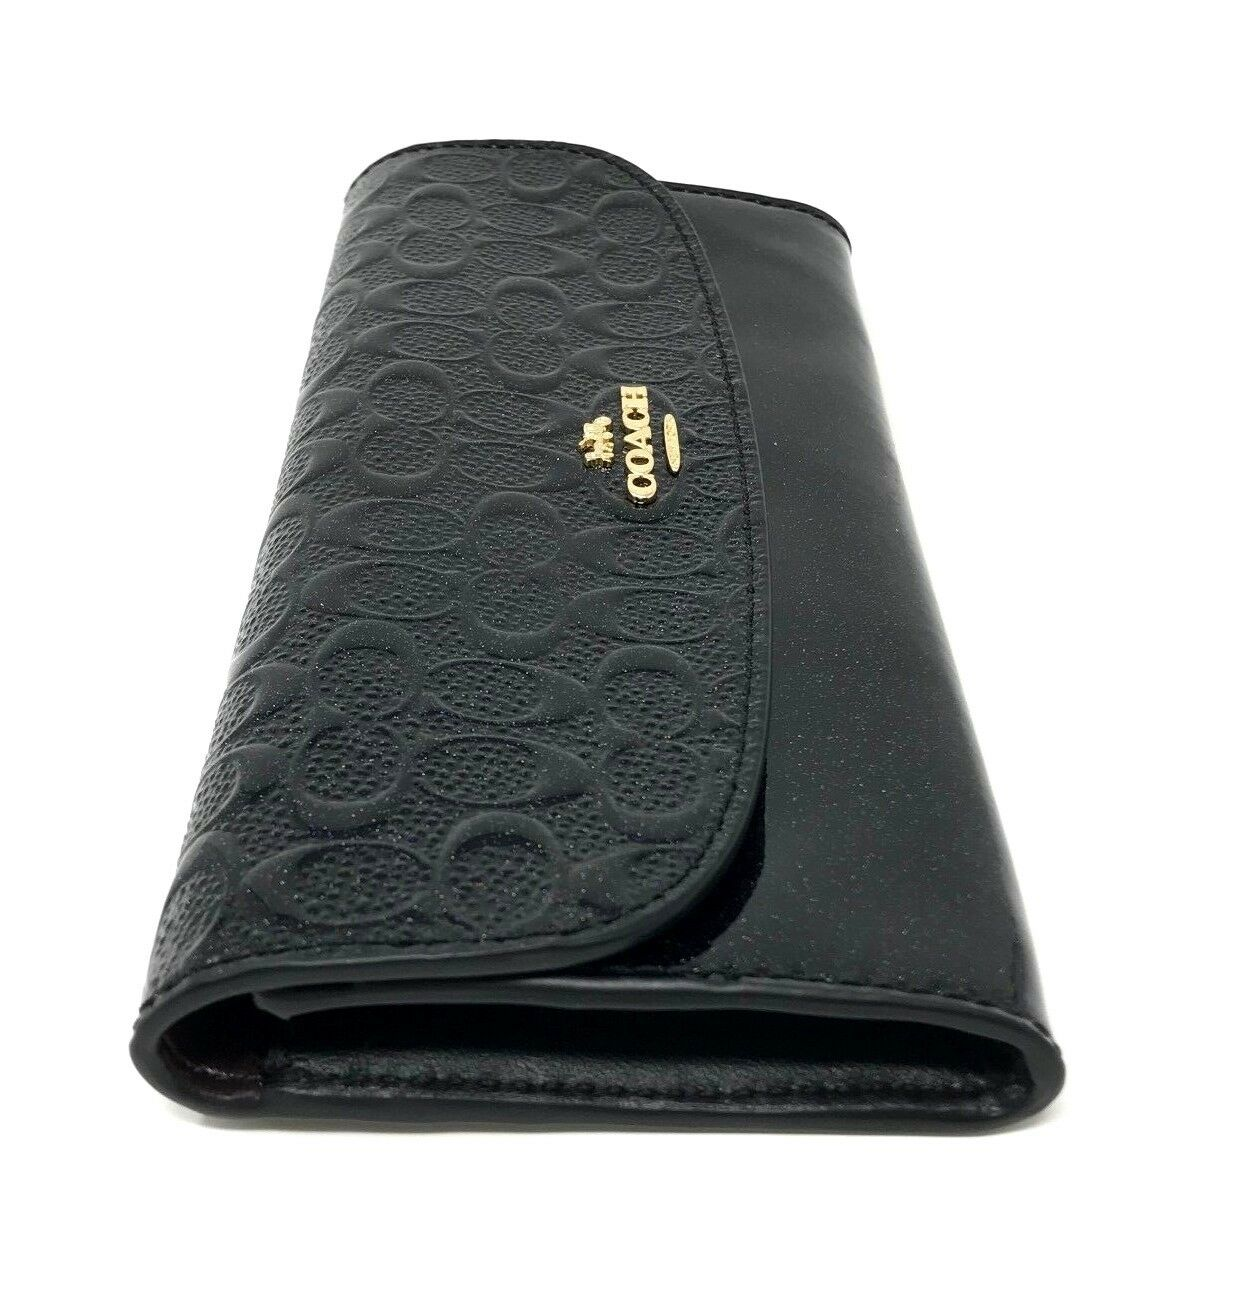 Coach Black Signature Debossed Patent Leather Soft Wallet F26814 $175